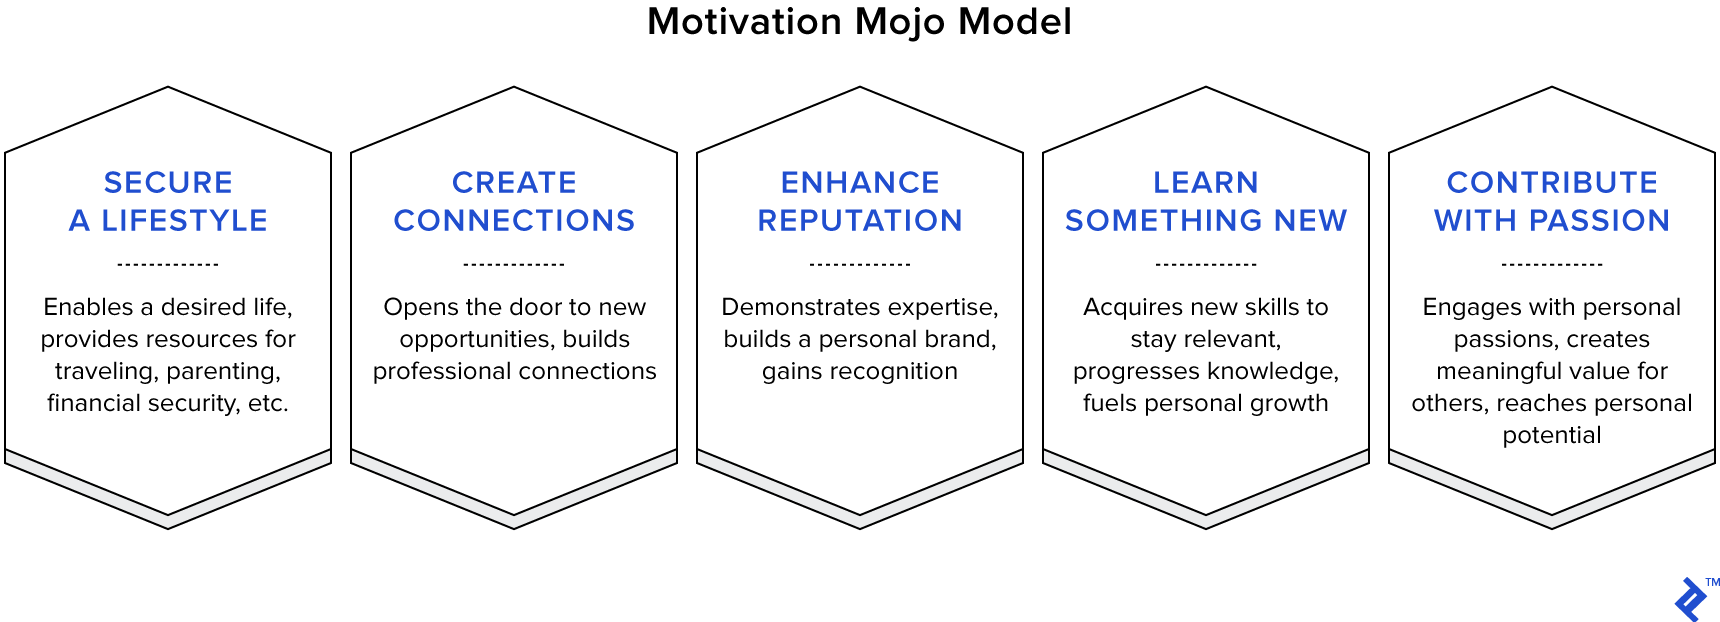 The motivation mojo model: motivation psychology